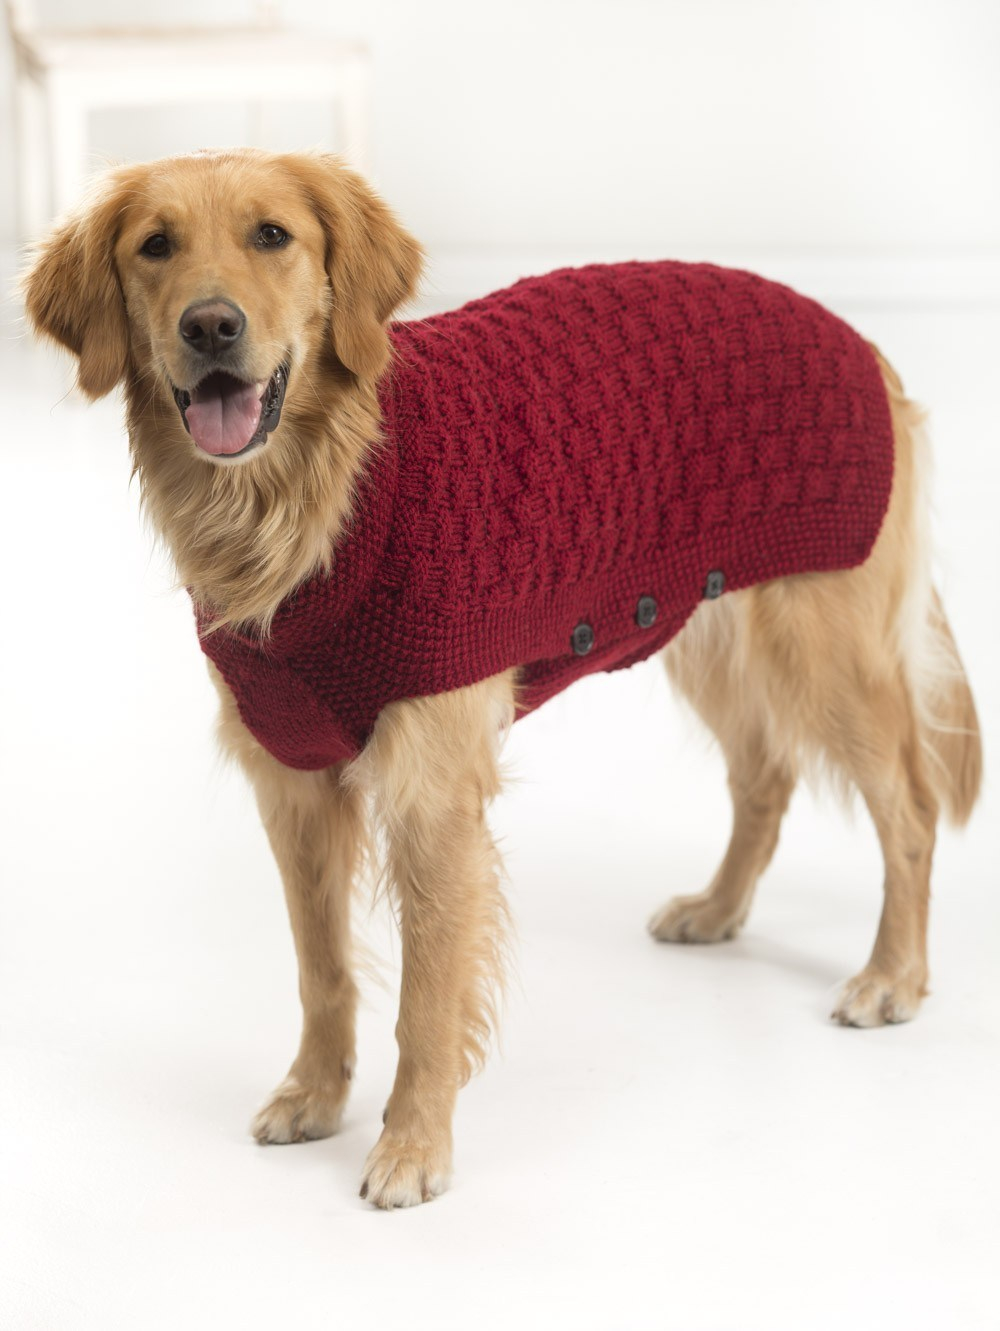 Dog Sweater Knitting Pattern 10 Stunning Examples Of Beautiful Fall Dog Sweaters Free Knitting